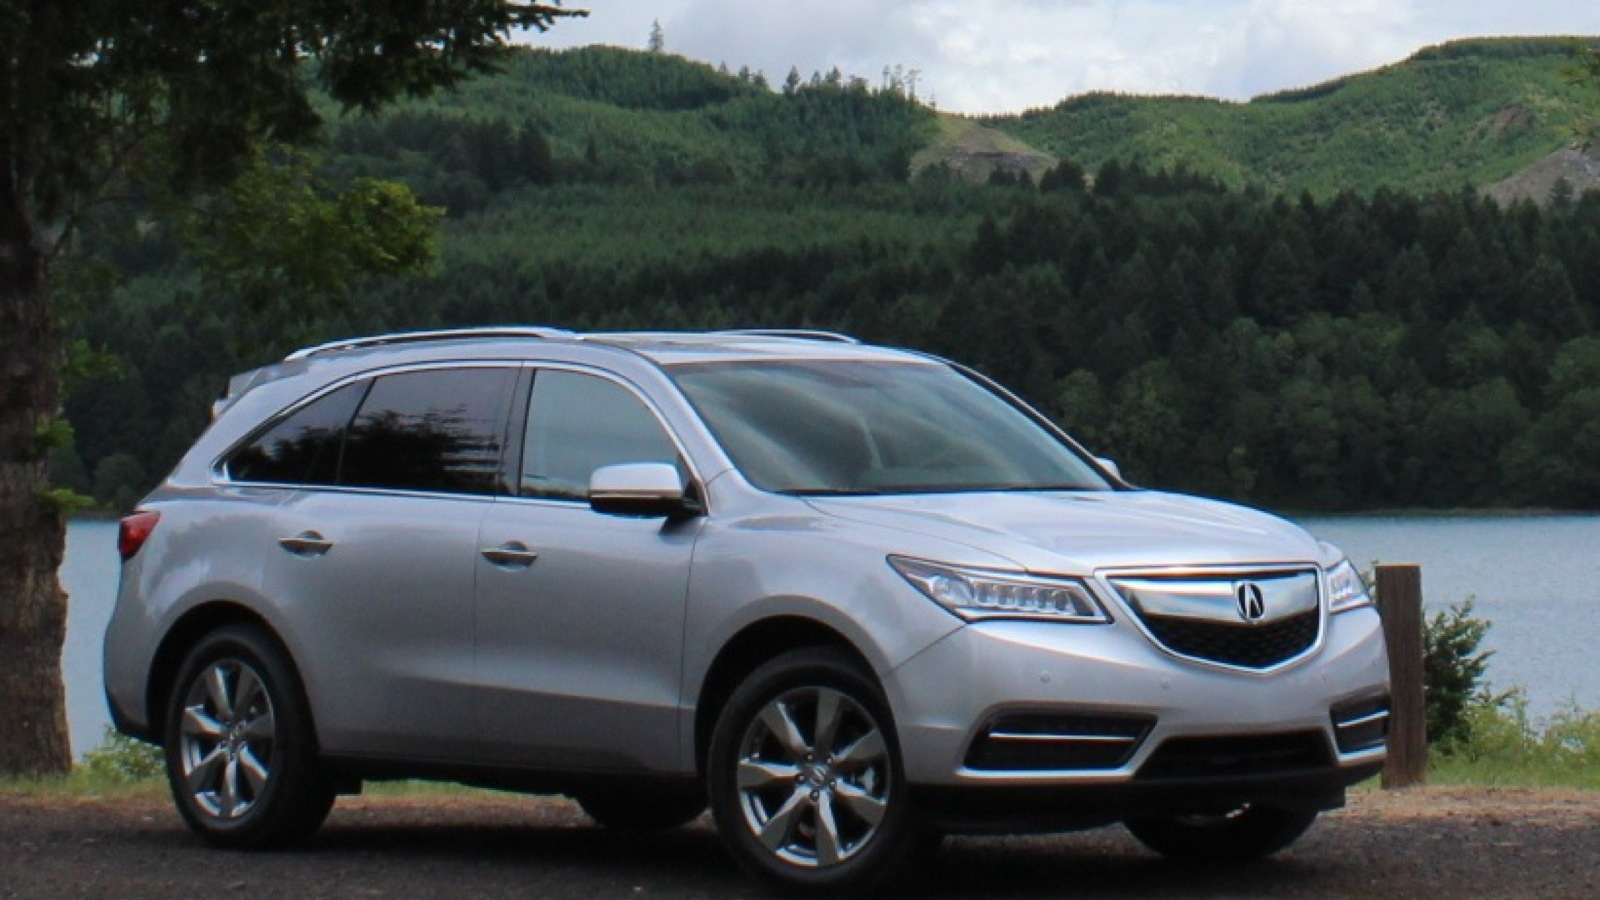 2014 Acura MDX  -  First Drive, May 2013